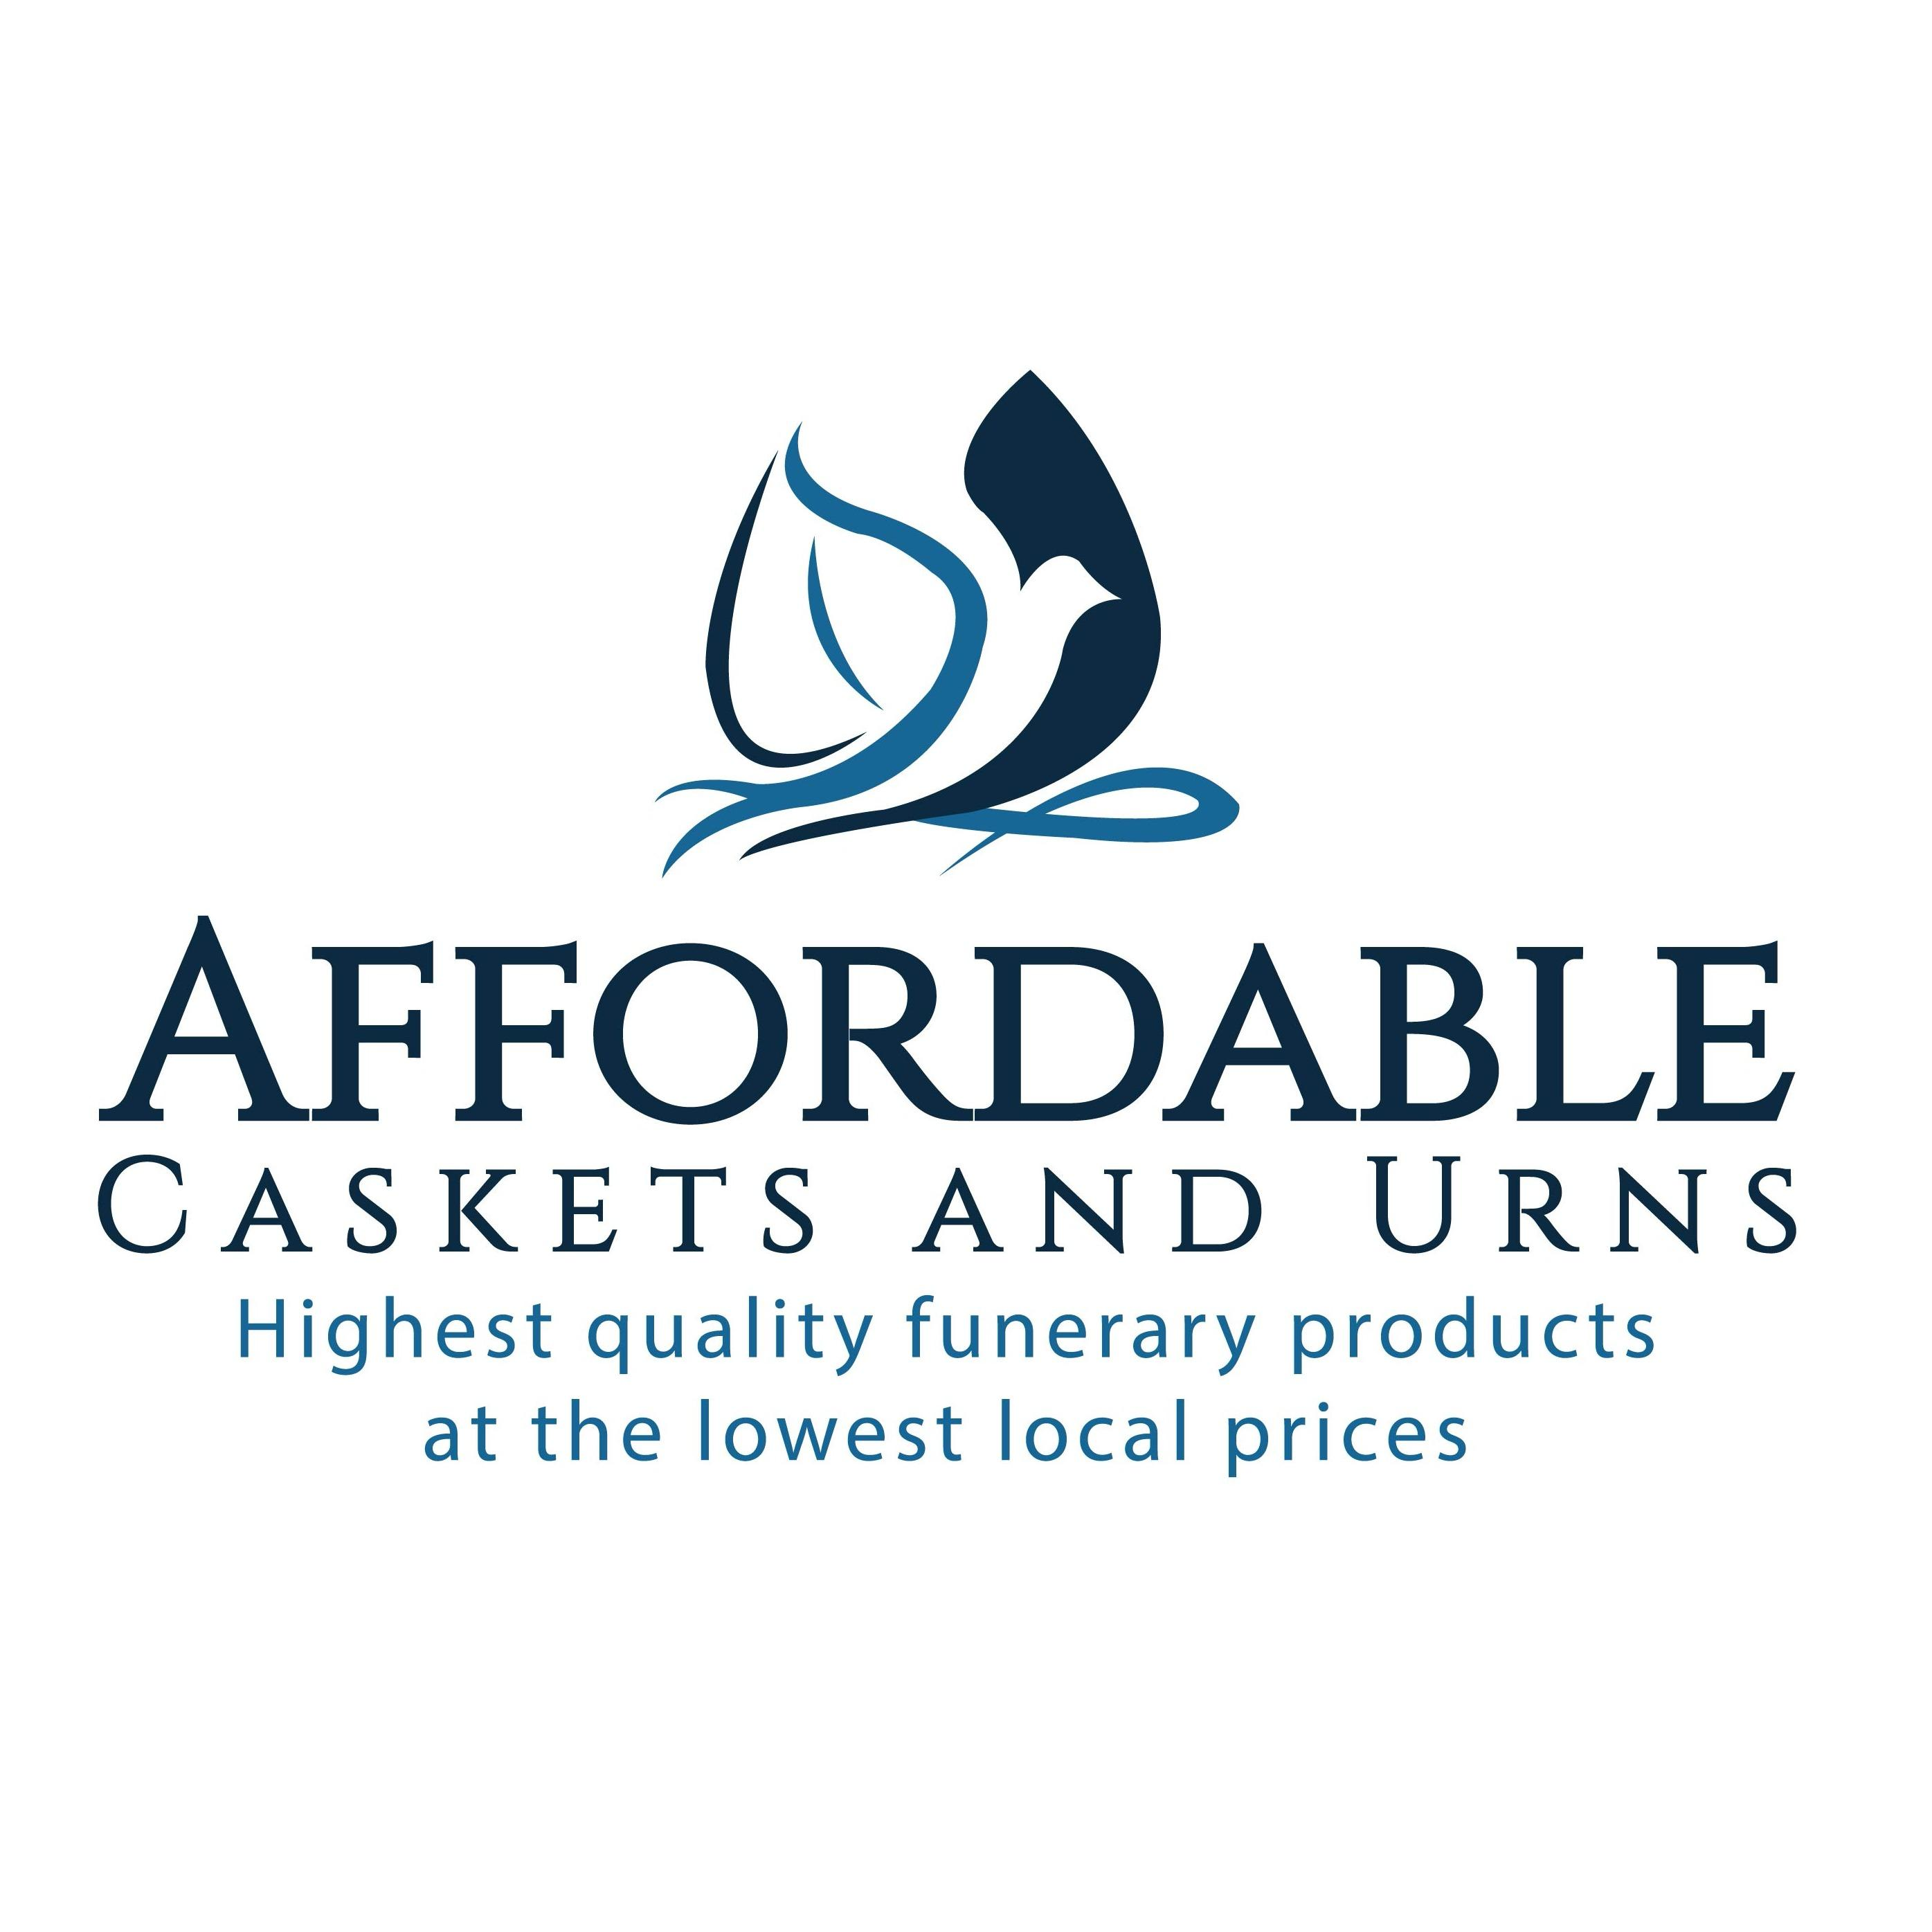 Affordable Caskets and Urns